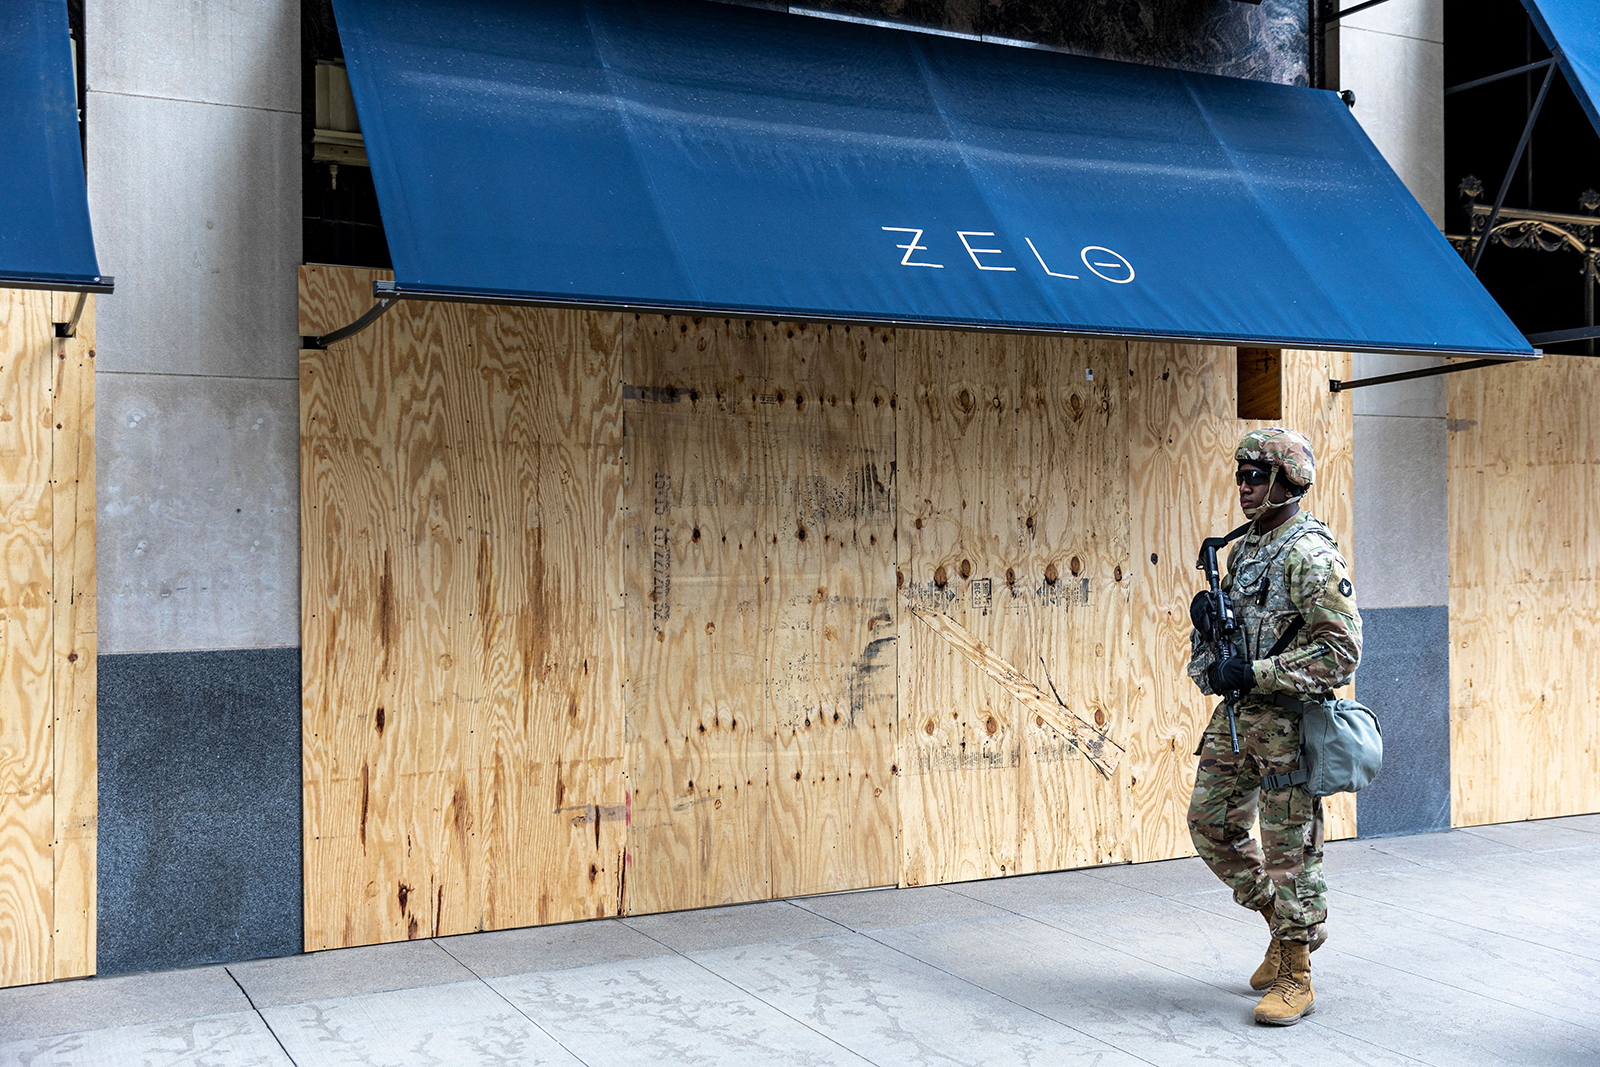 A member of the National Guard walks past a boarded up store front as he patrol downtown Minneapolis on April 14.